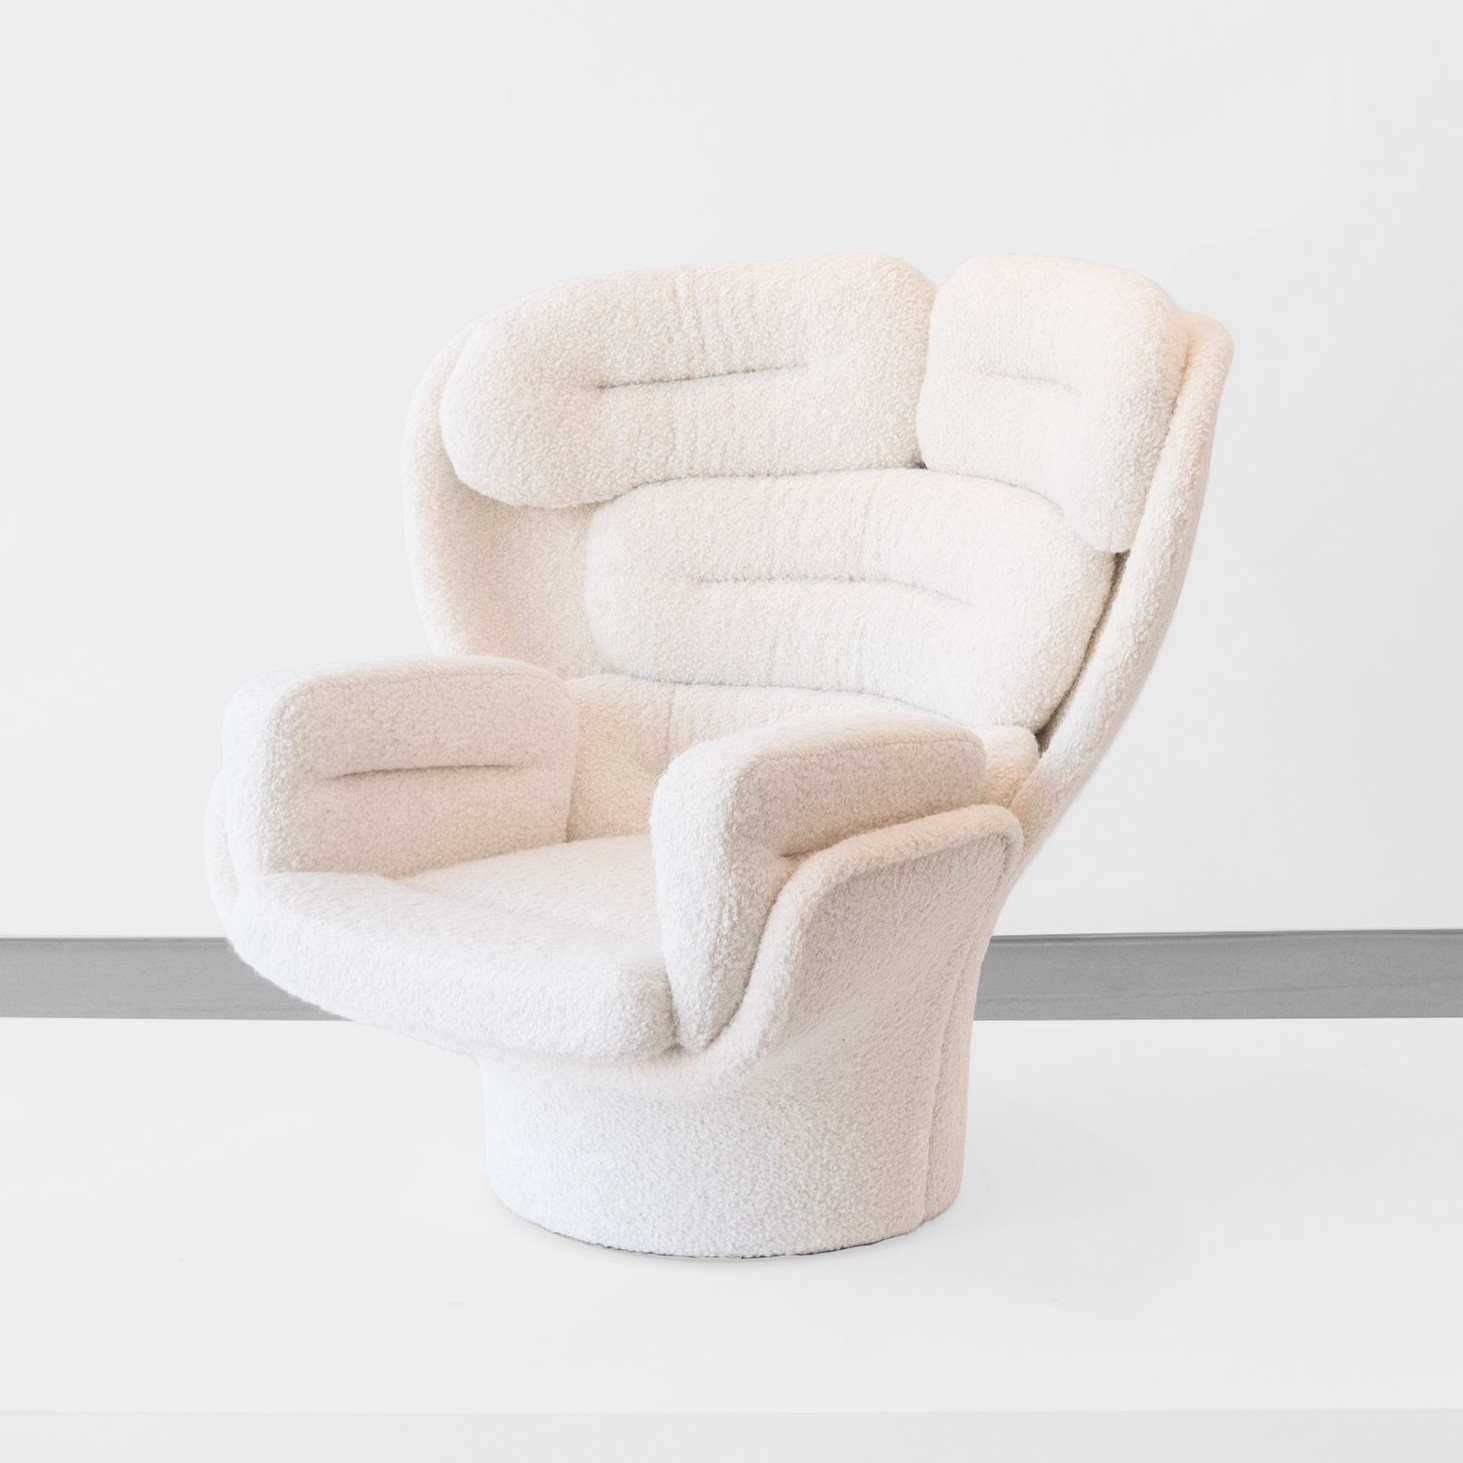 joe colombo 'elda' armchair sold